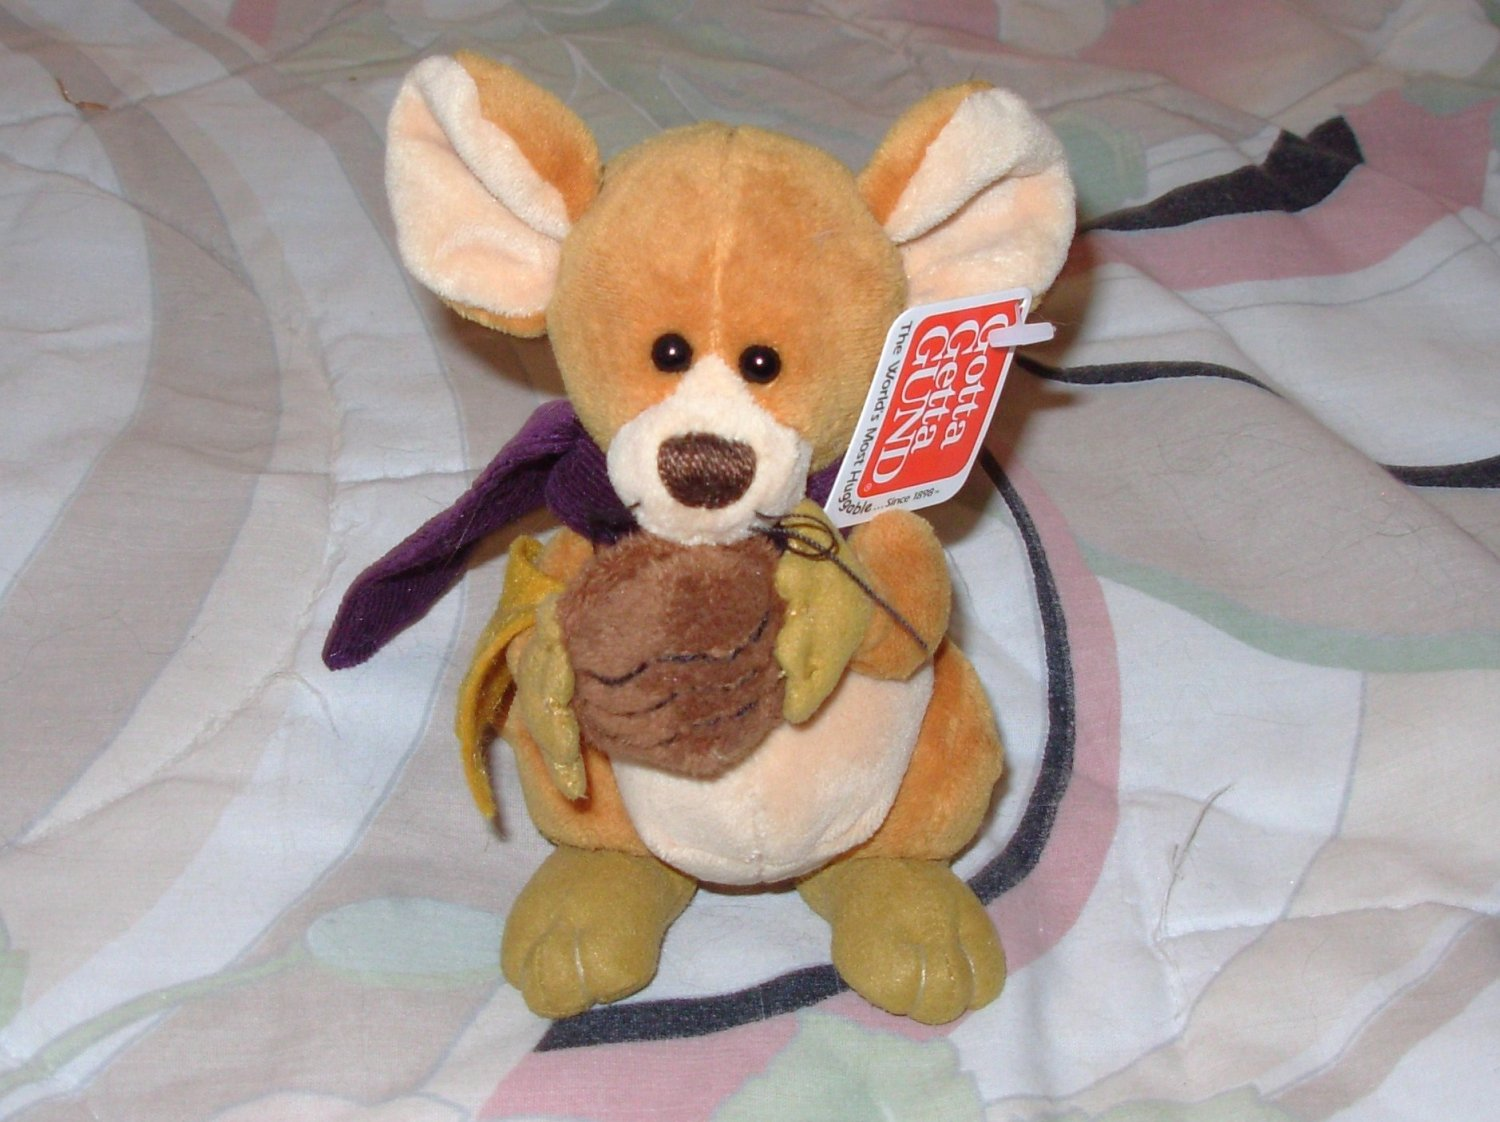 FIELDS RETIRED GUND AUTUMN MOUSE PLUSH STUFFED ANIMAL NEW WITH ORIGINAL TAGS